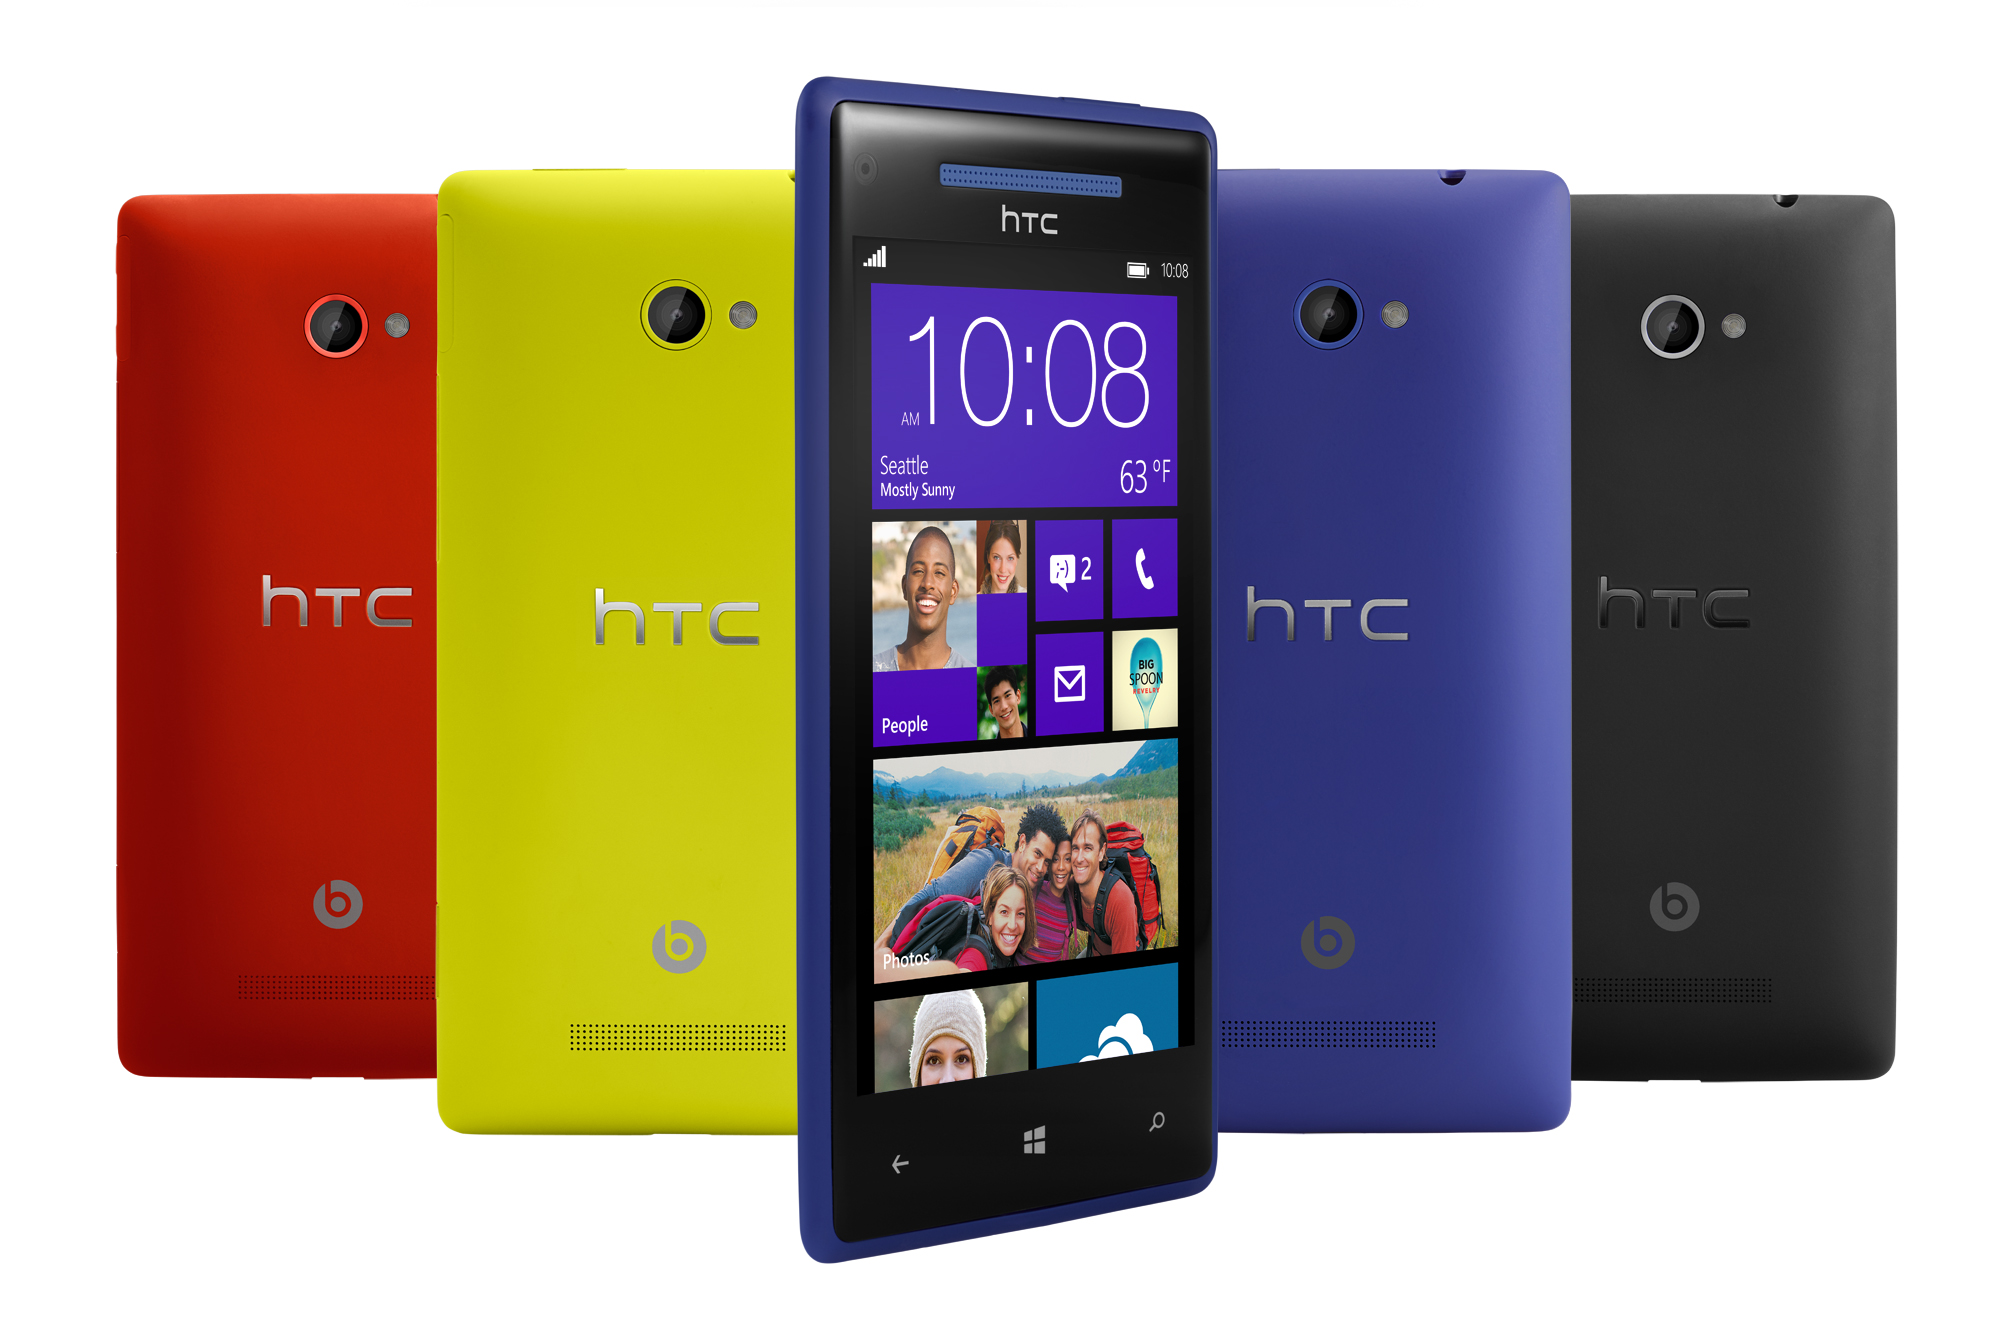 htc smartphones price list in india 2012 alejos87 Hoy